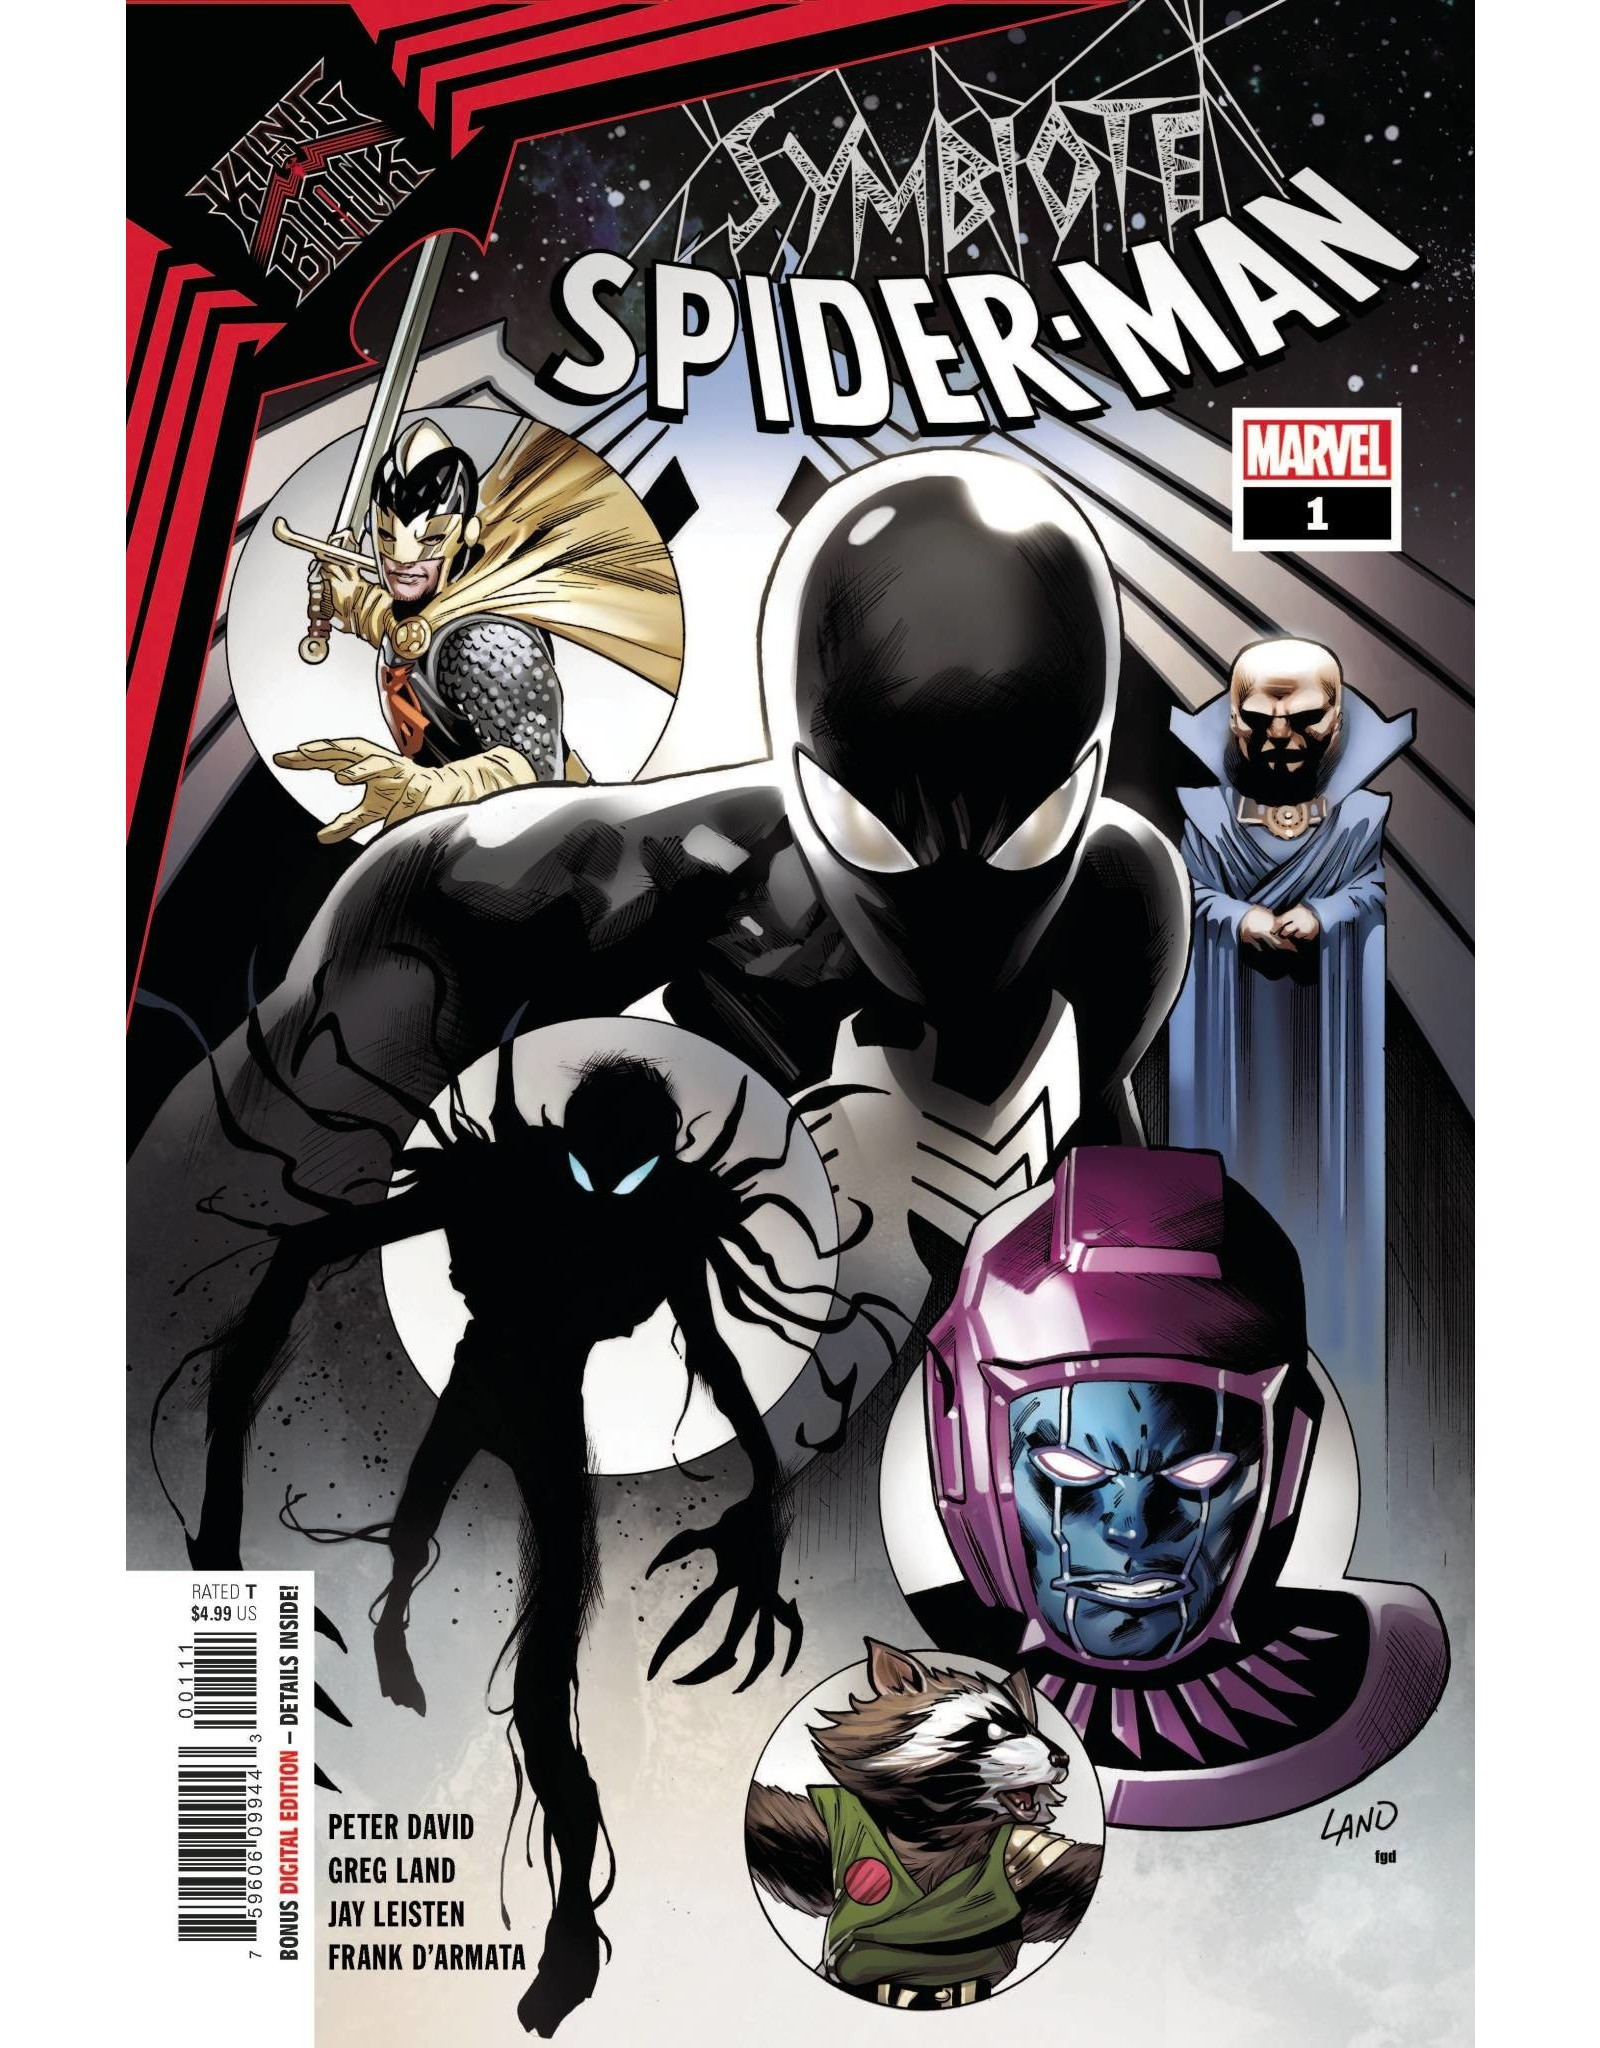 Marvel Comics SYMBIOTE SPIDER-MAN KING IN BLACK #1